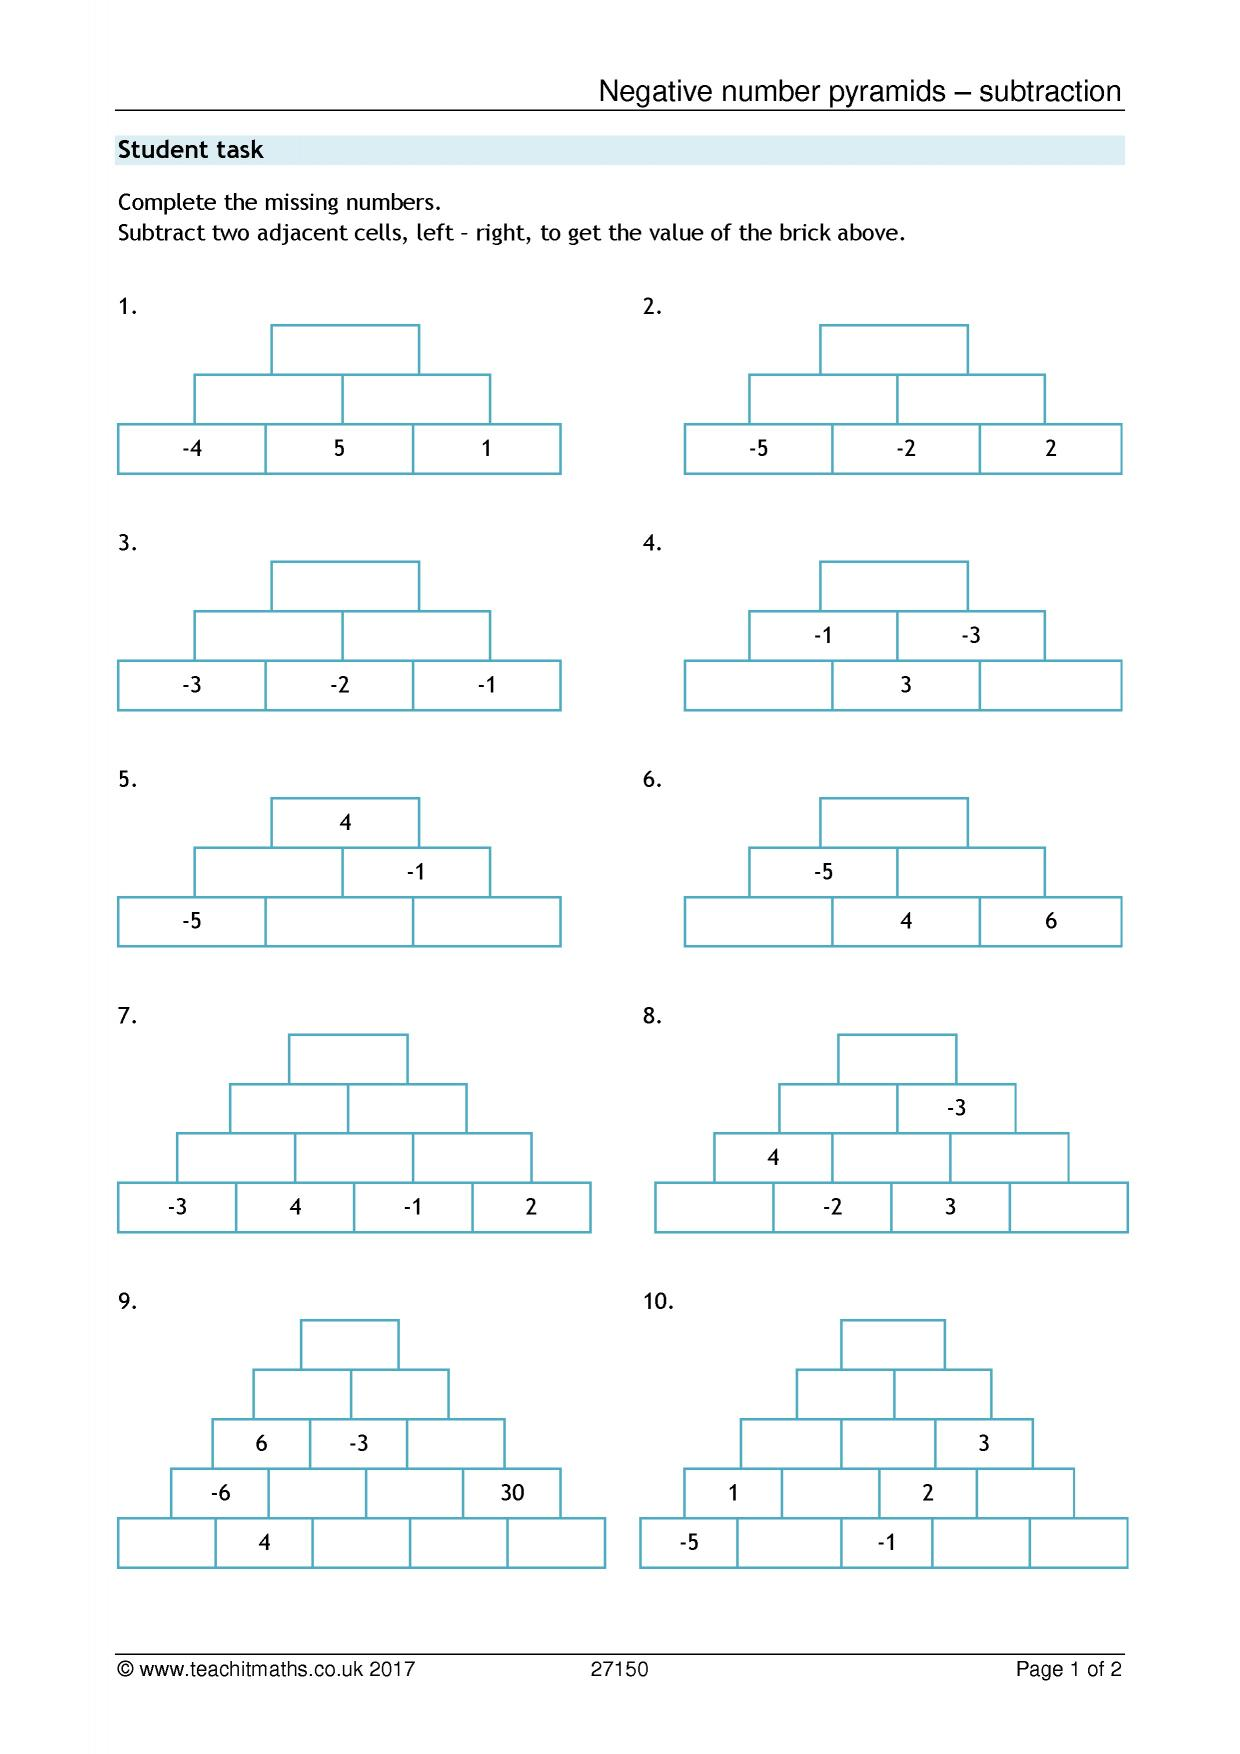 Negative Numbers Pyramids Subtraction